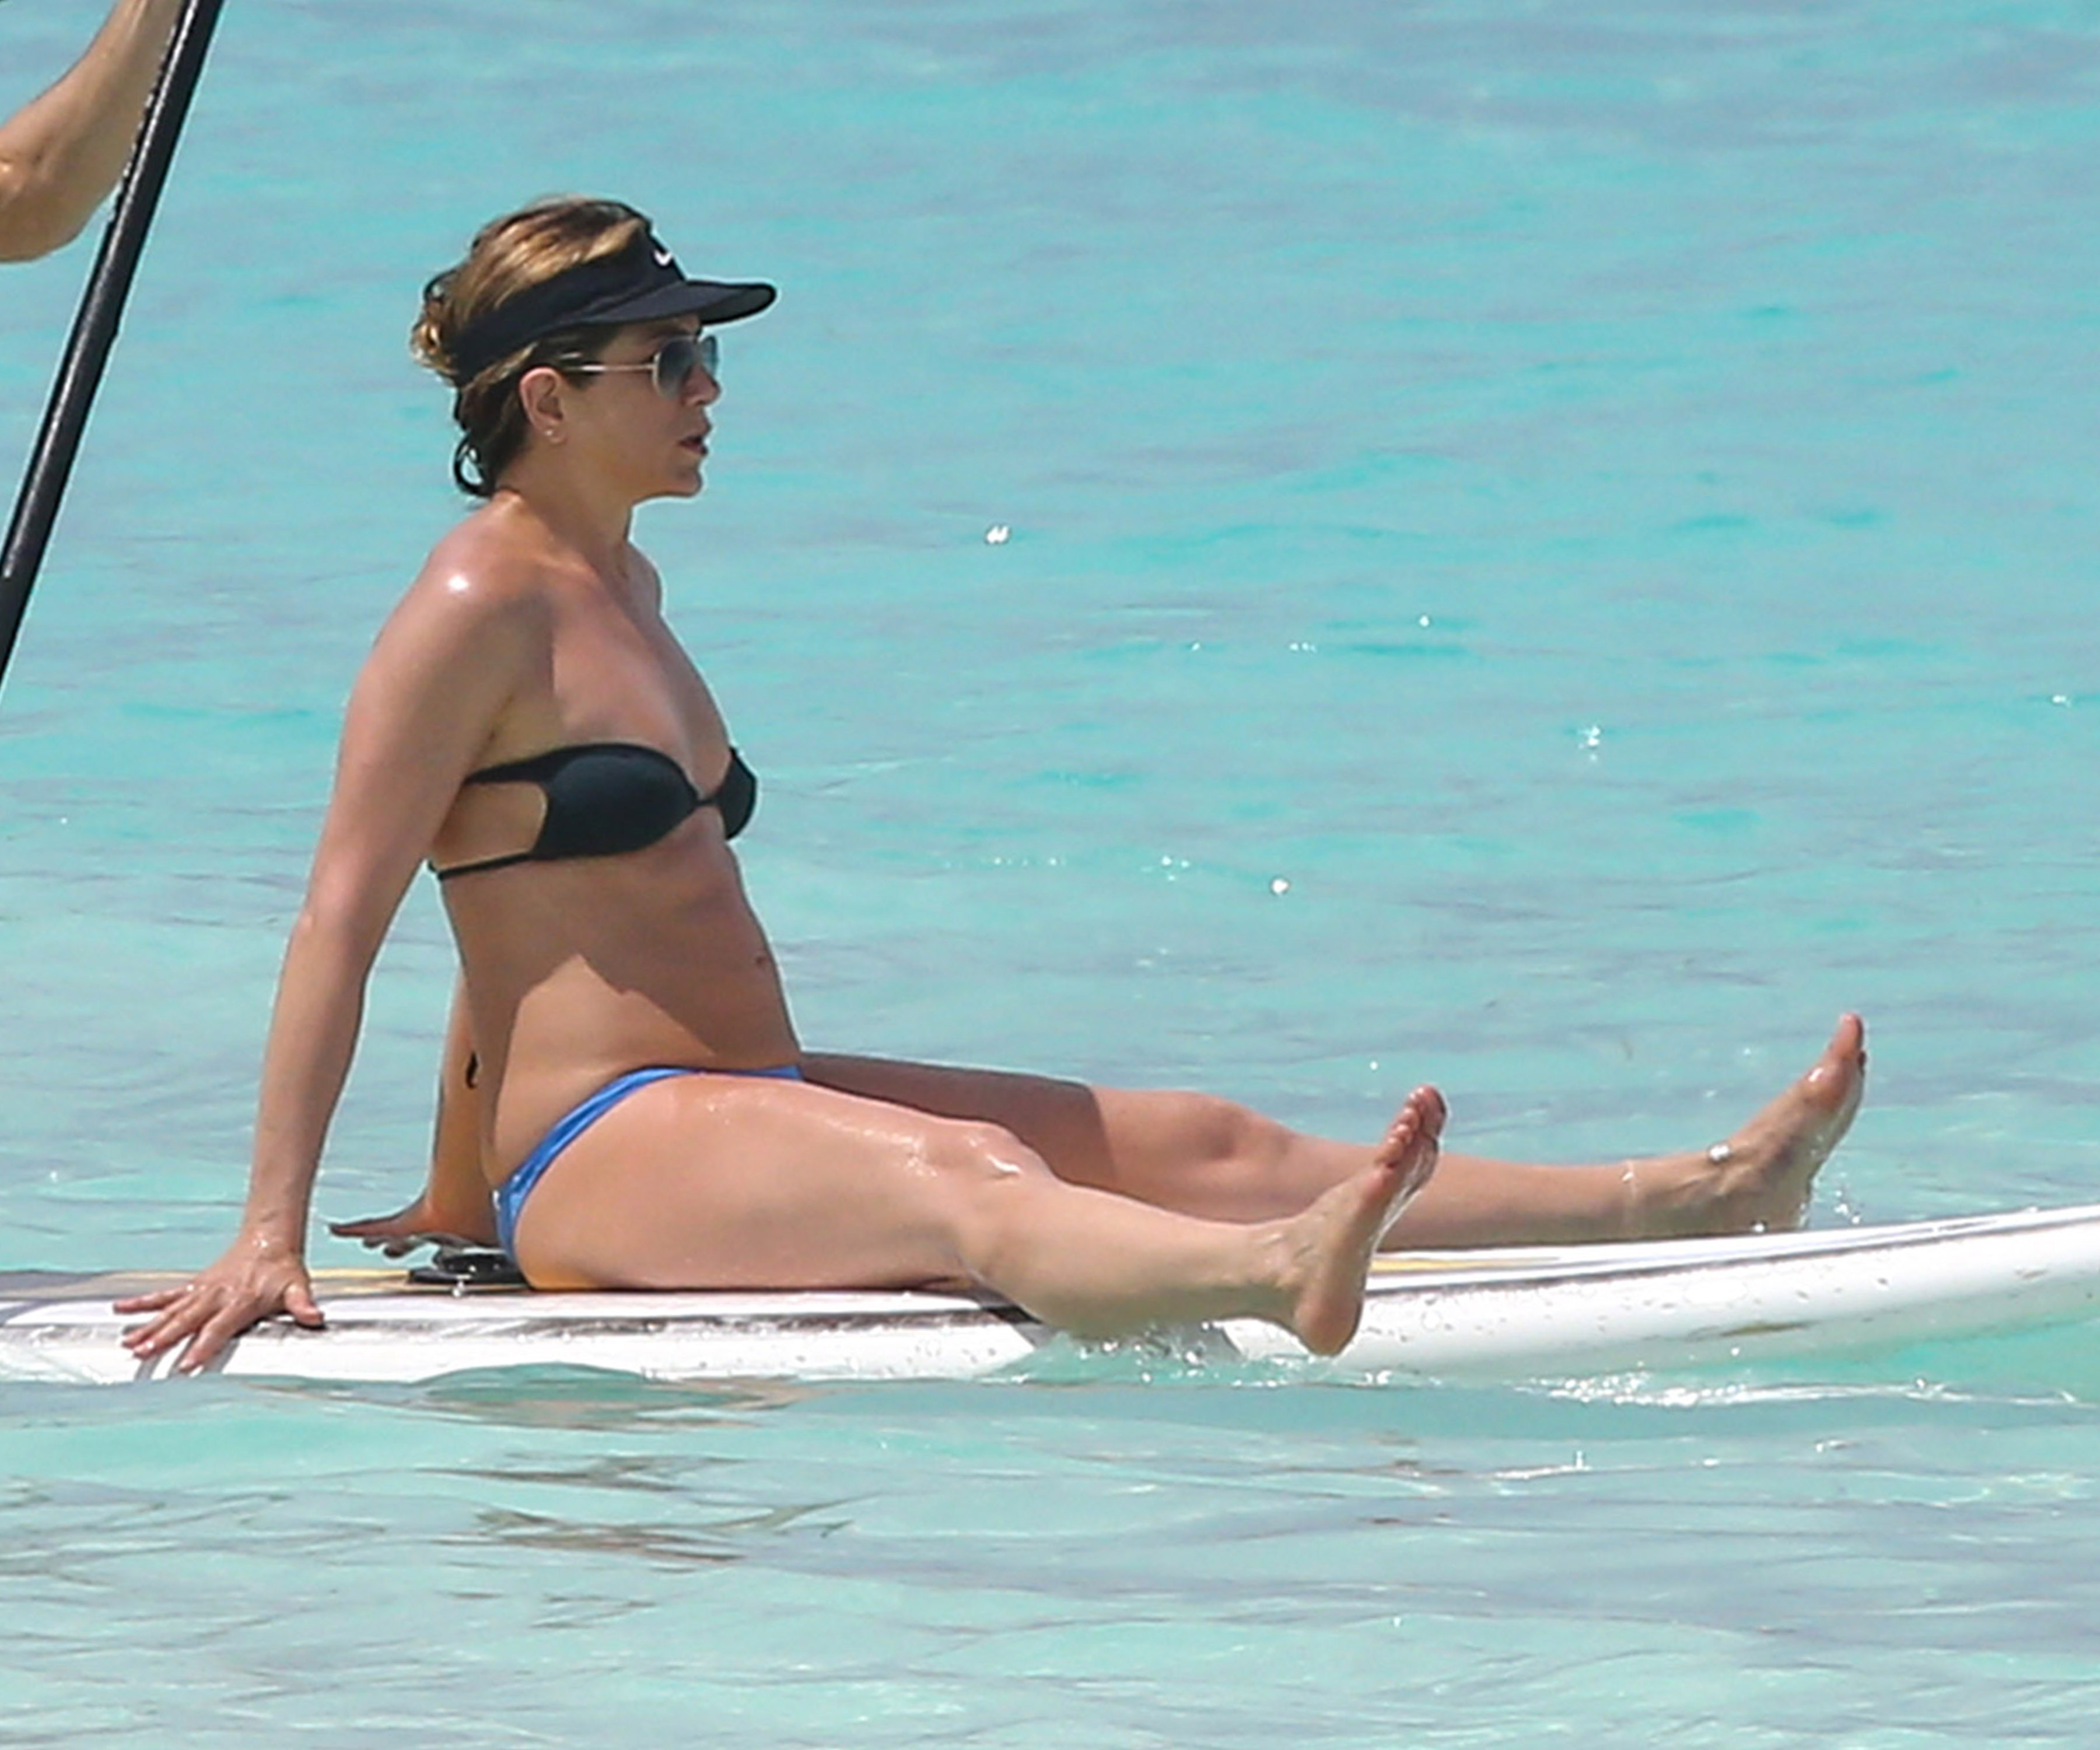 Jennifer Aniston Shows Off Her Toned Figure And Incredible Abs On That Holiday With Husband Justin Theroux